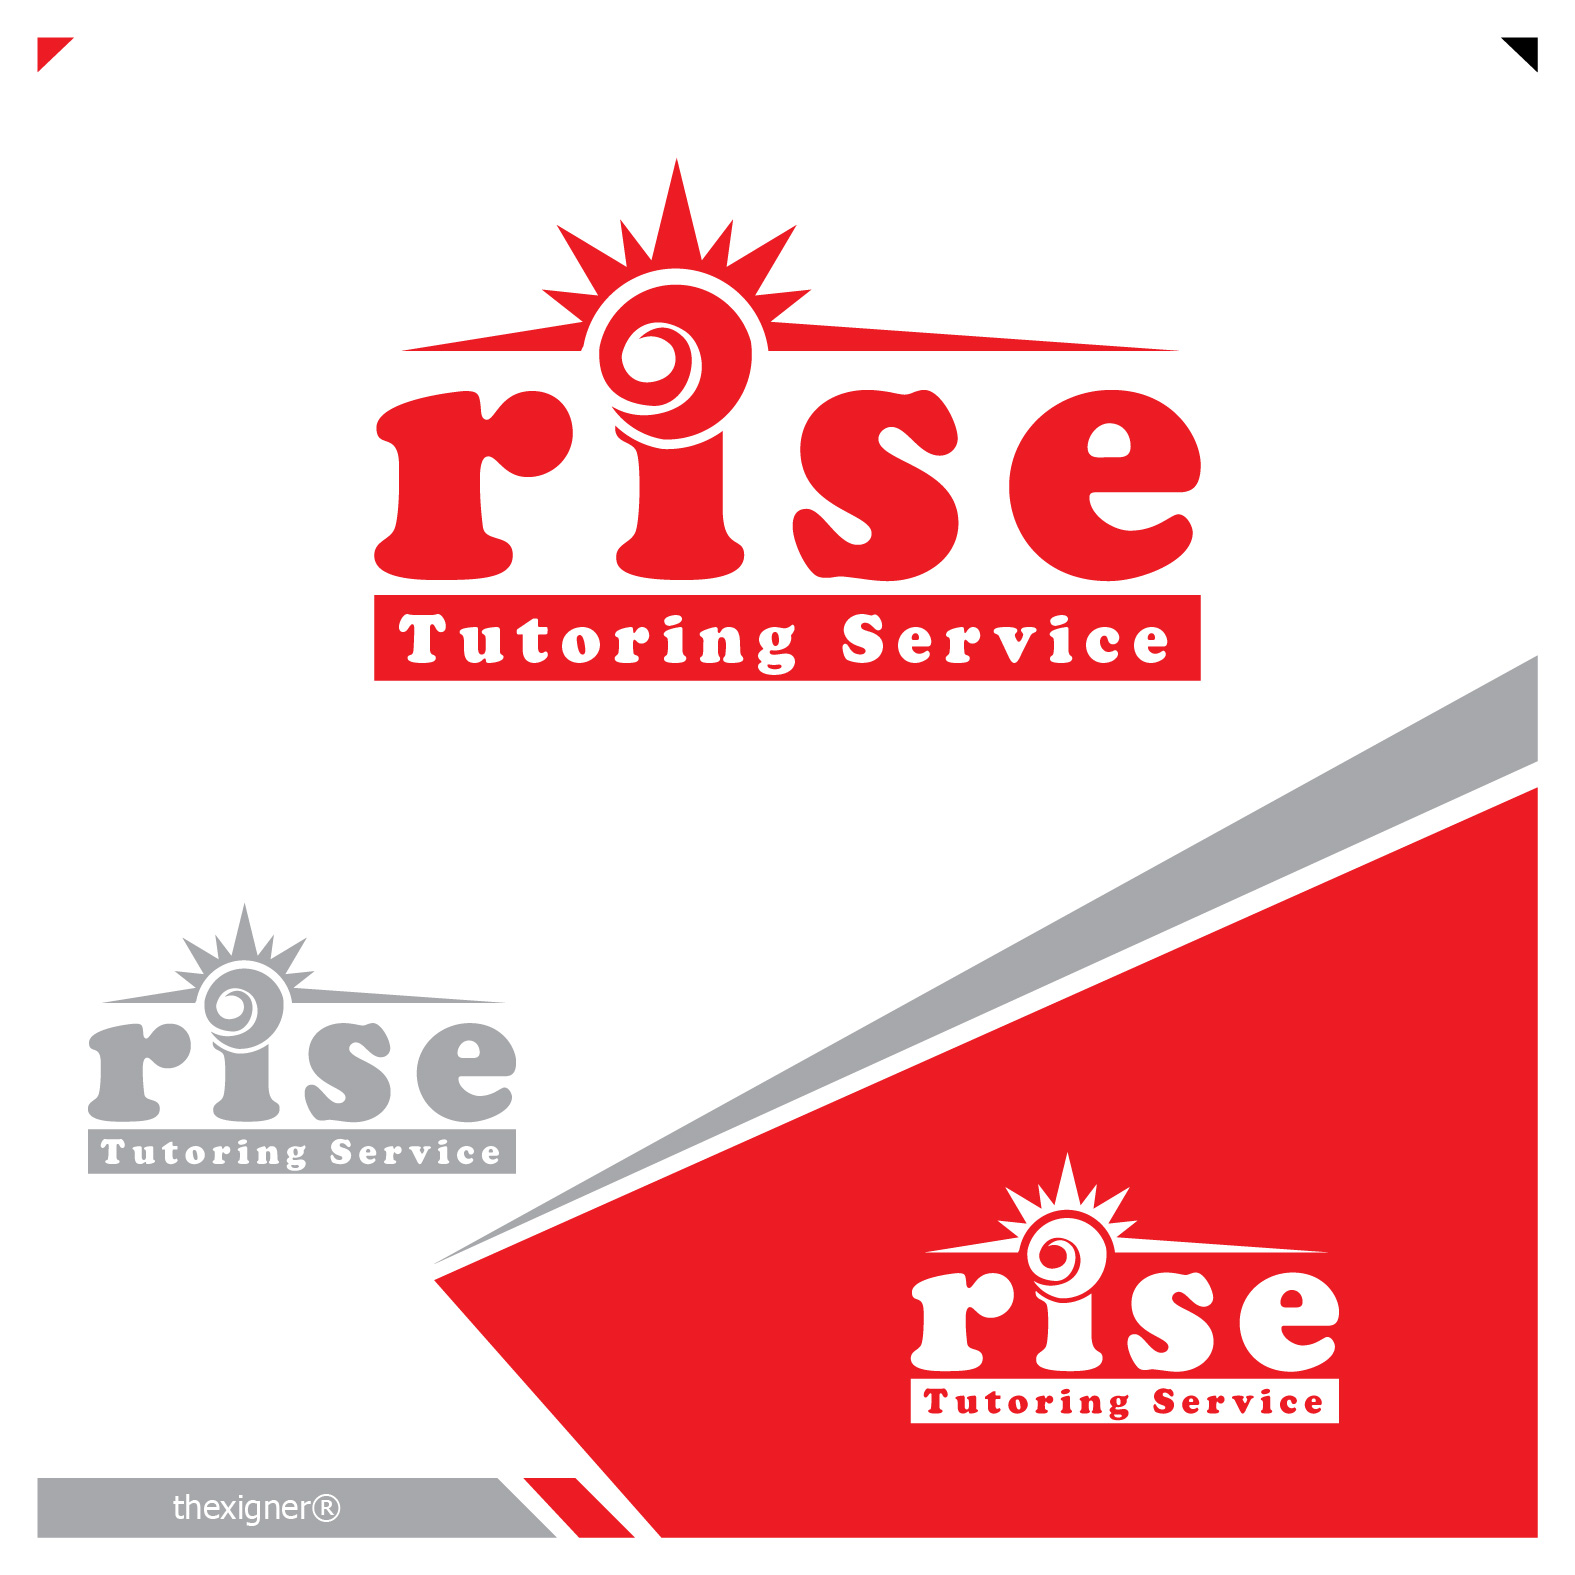 Logo Design by lagalag - Entry No. 119 in the Logo Design Contest Imaginative Logo Design for Rise Tutoring Service.